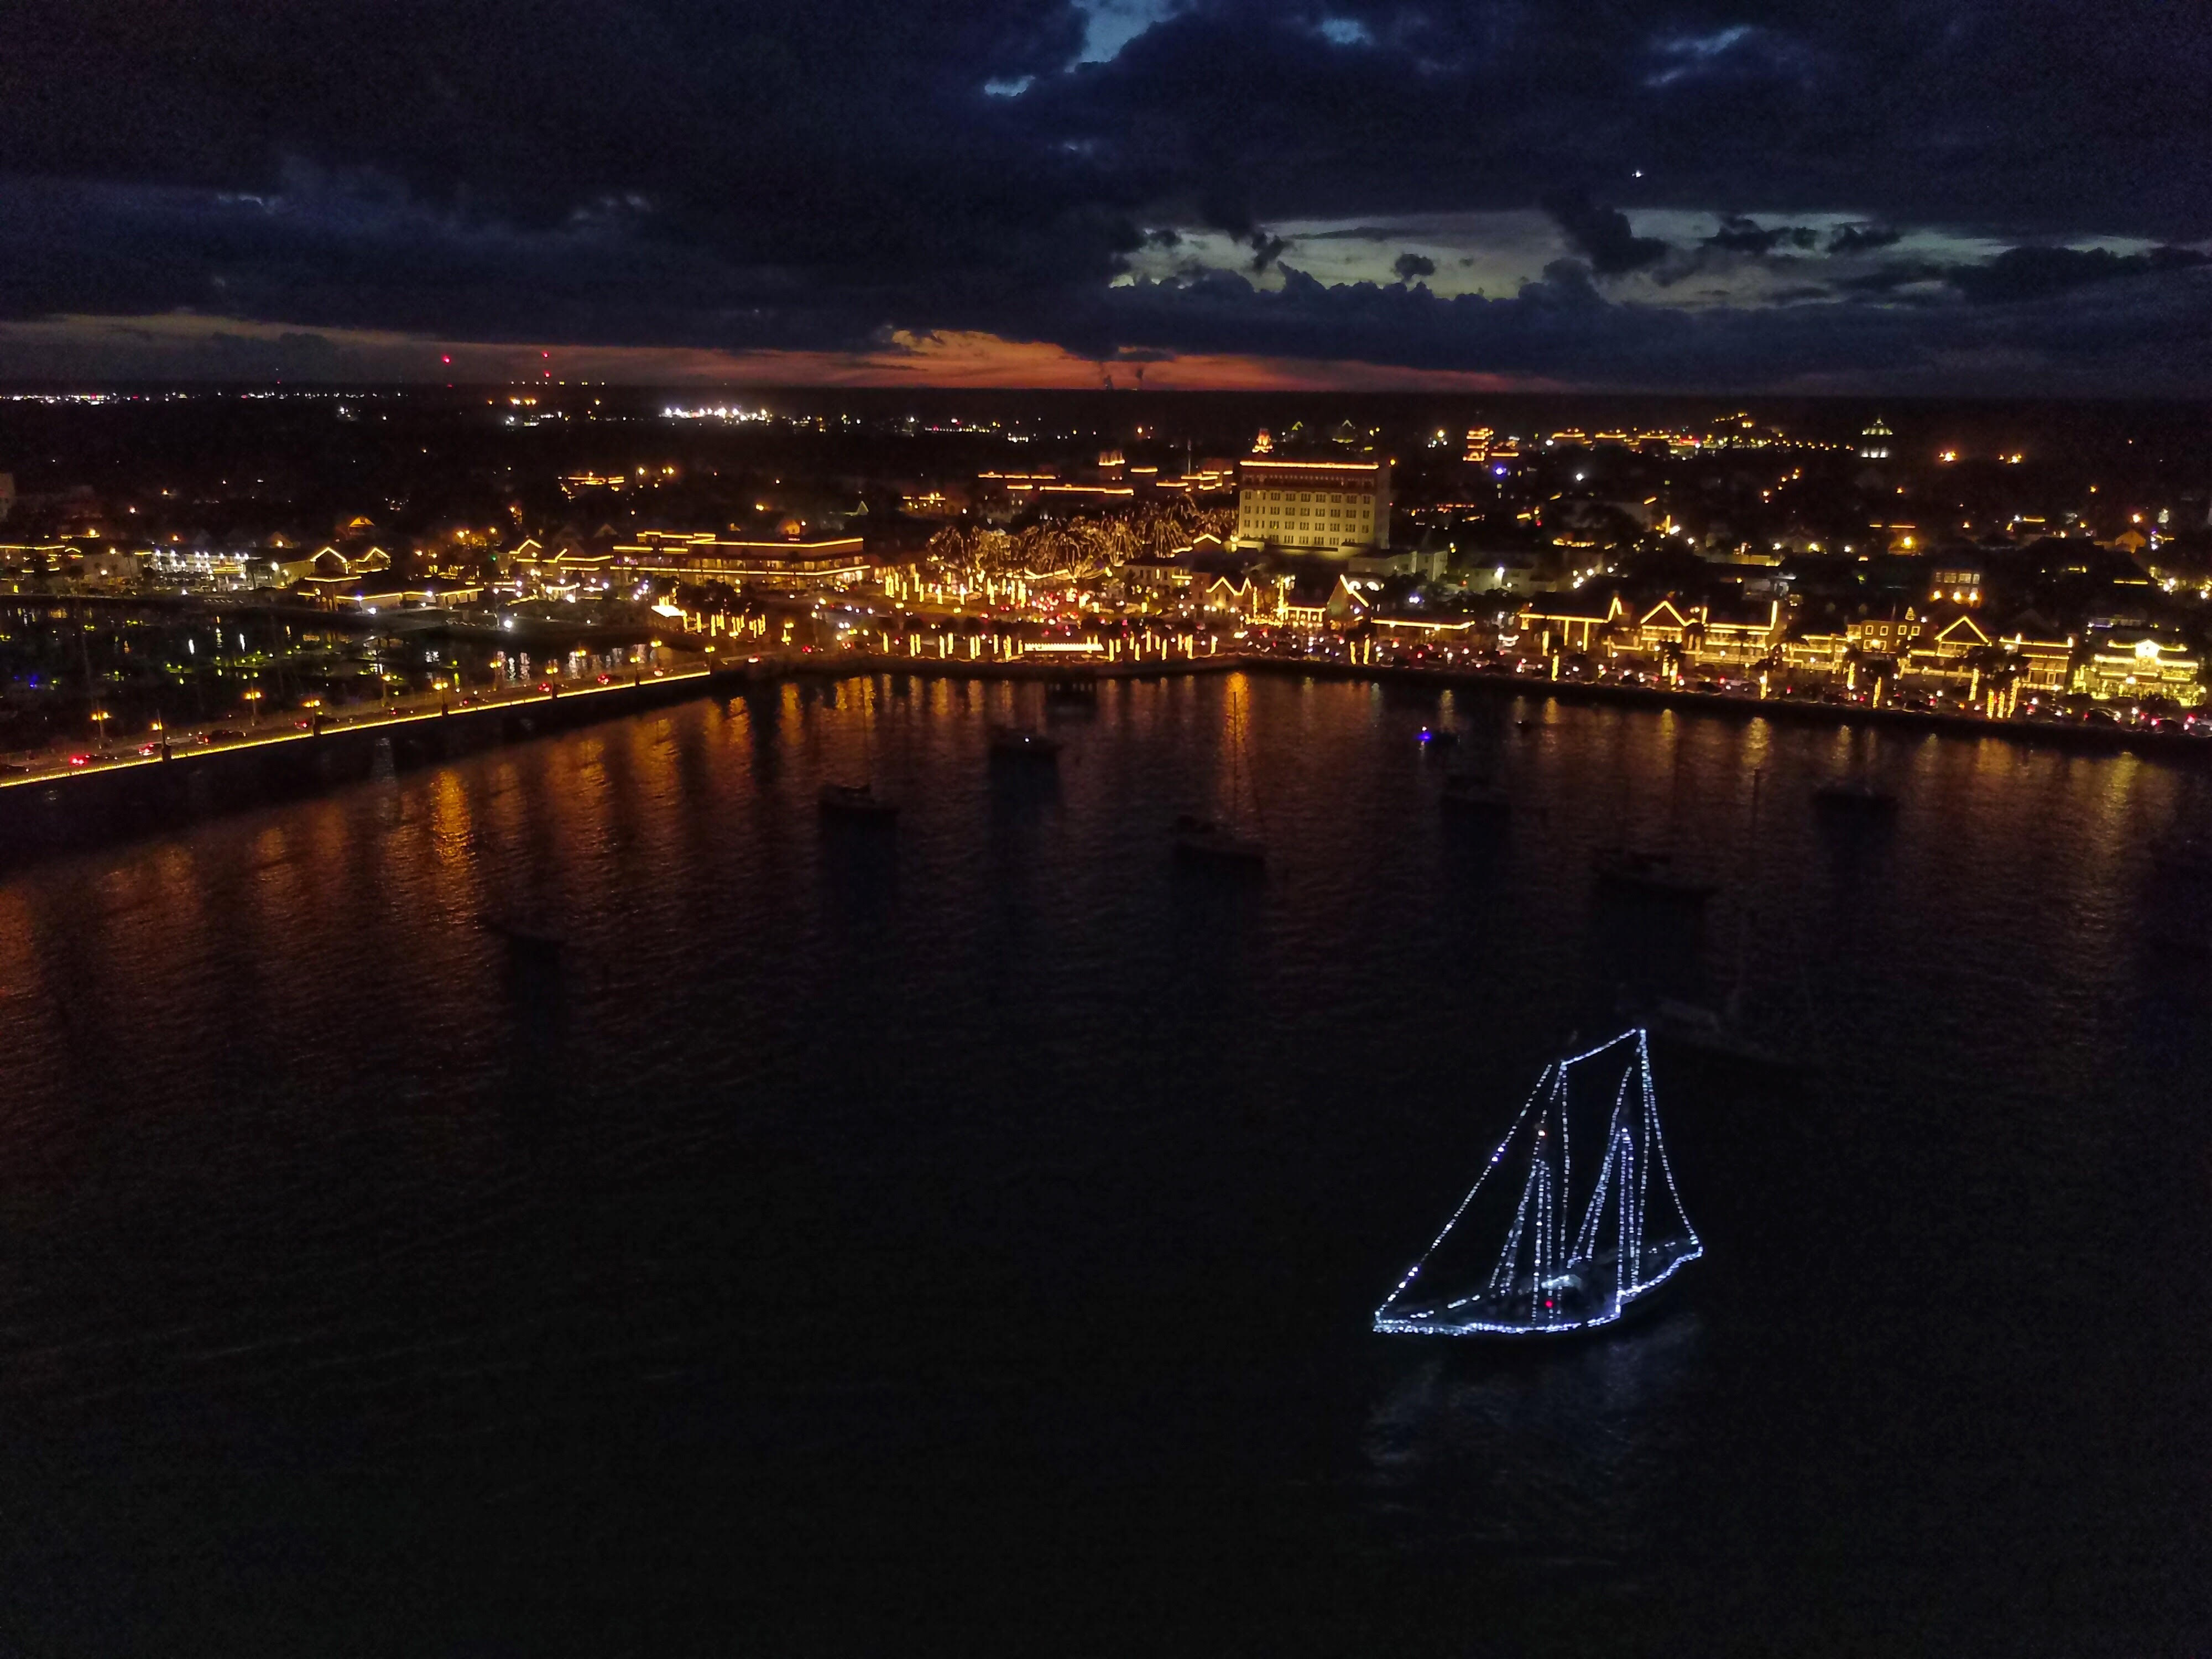 St Augustine Christmas Lights Tour 2021 Nights Of Lights Schooner Freedom Charters